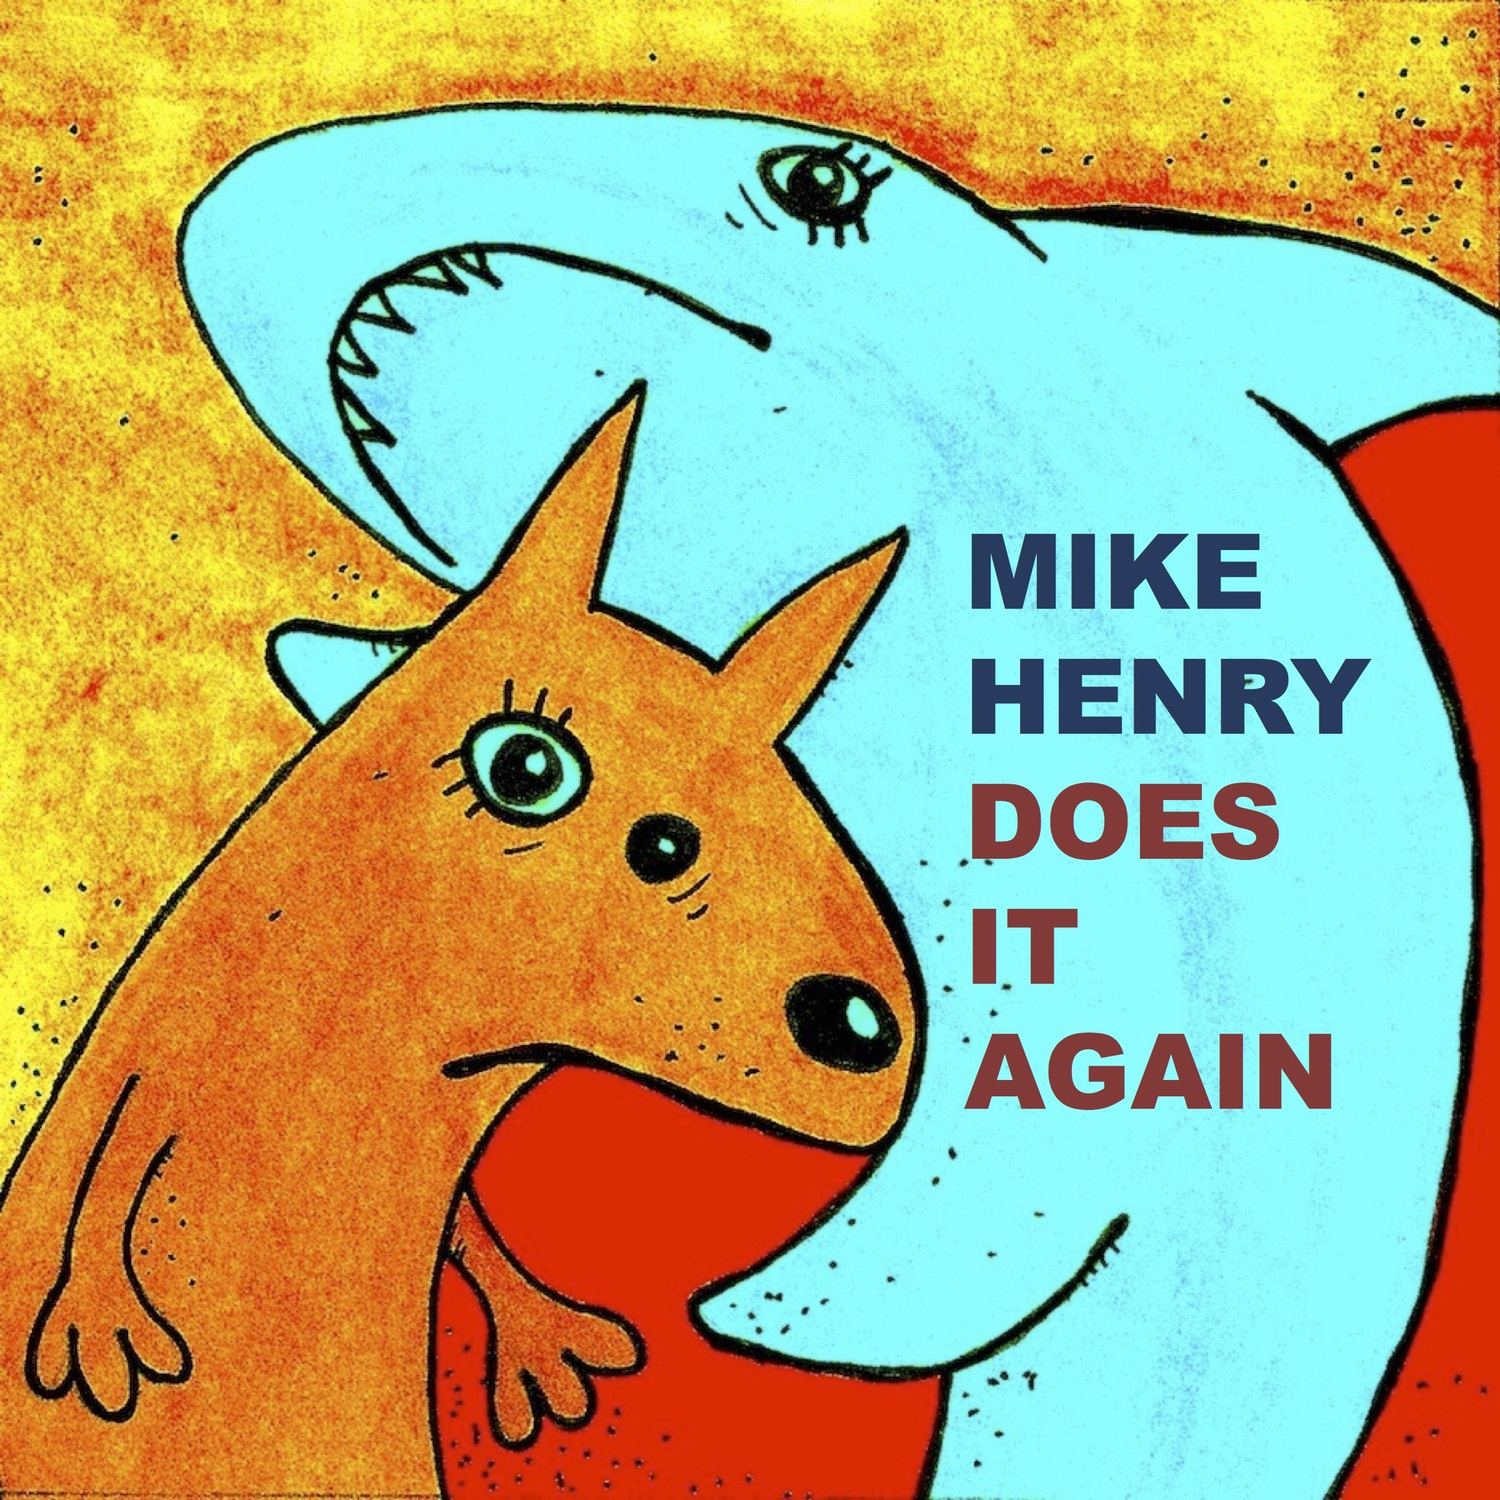 Mike Henry Does It Again